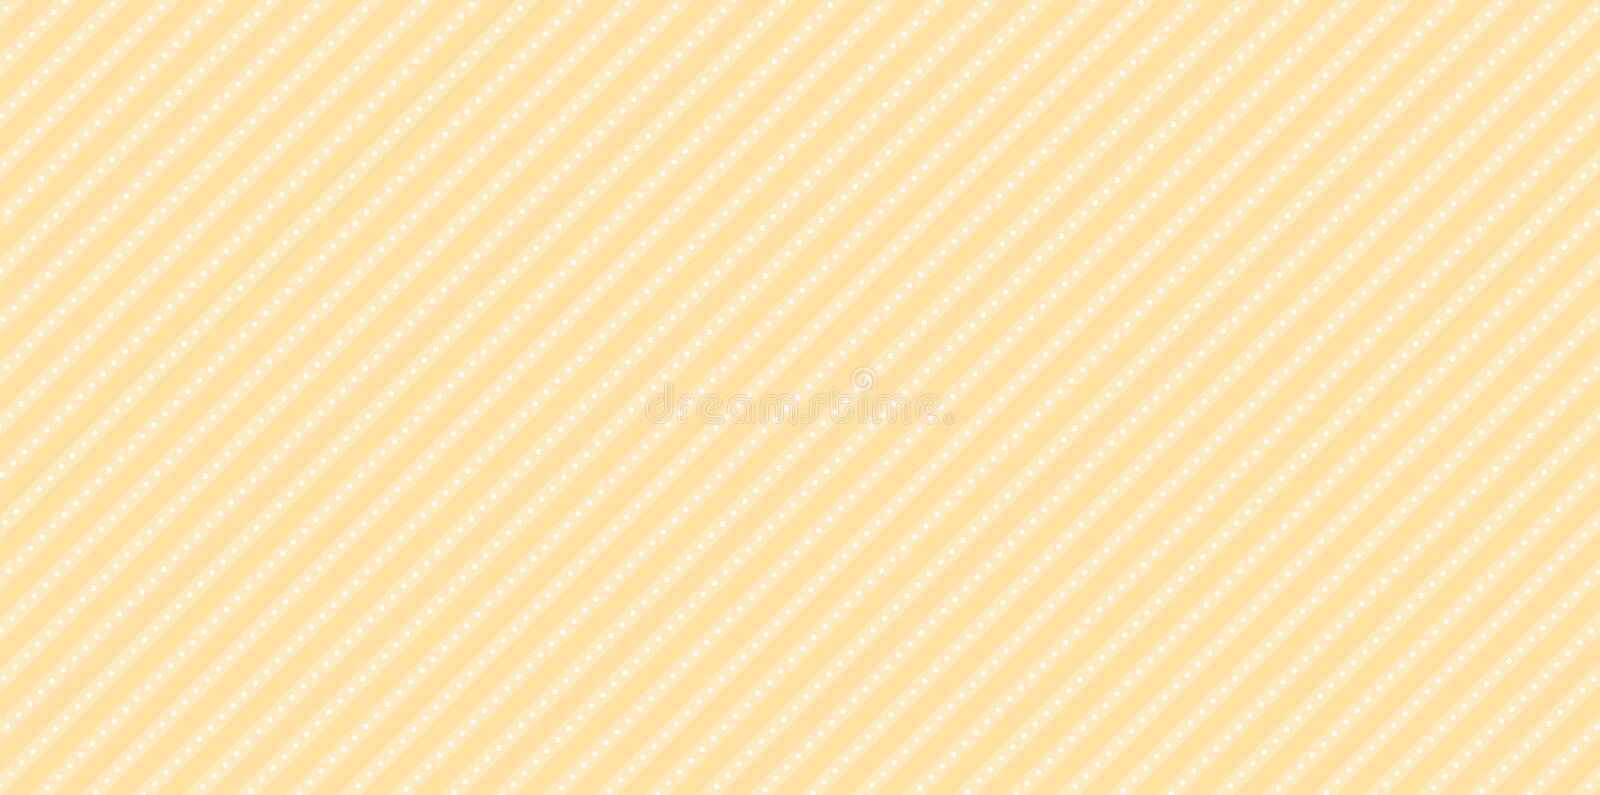 Lol doll vector background with stripes and polka dots. Cute light yellow backdrop for decoration girly party. Paper printable design. Beidge abstract pattern royalty free illustration